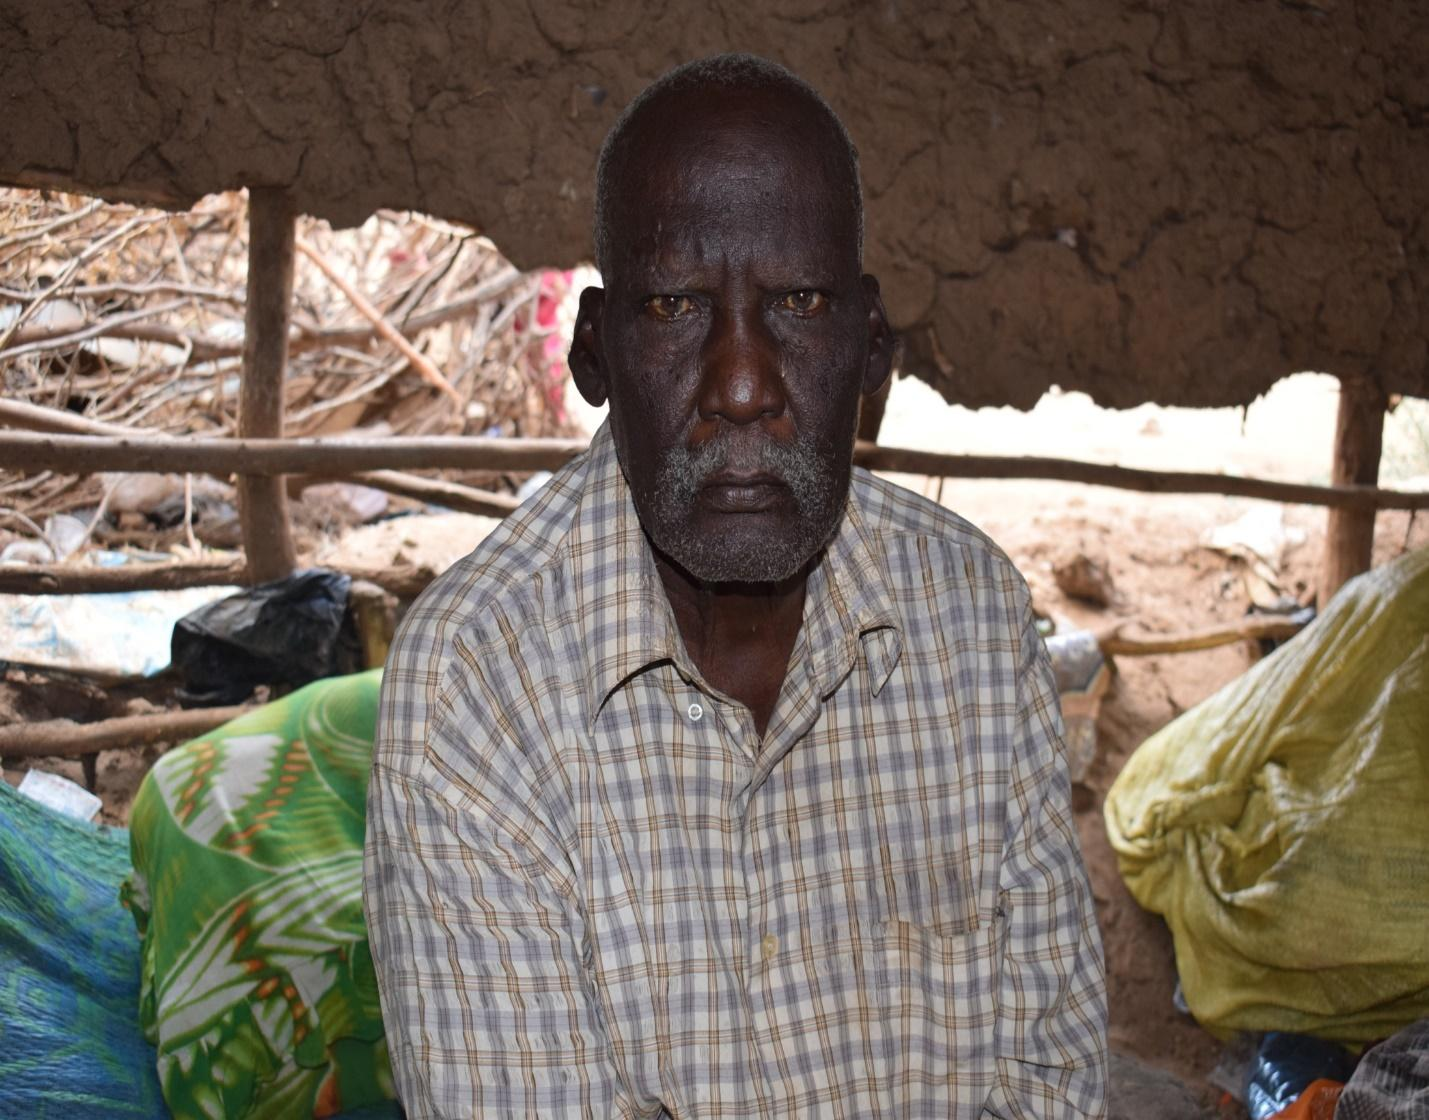 Mzee Yussuf Kufo Dadhe - Mororo, Tana River County | Photo by Shabin Barrow / ALDEF